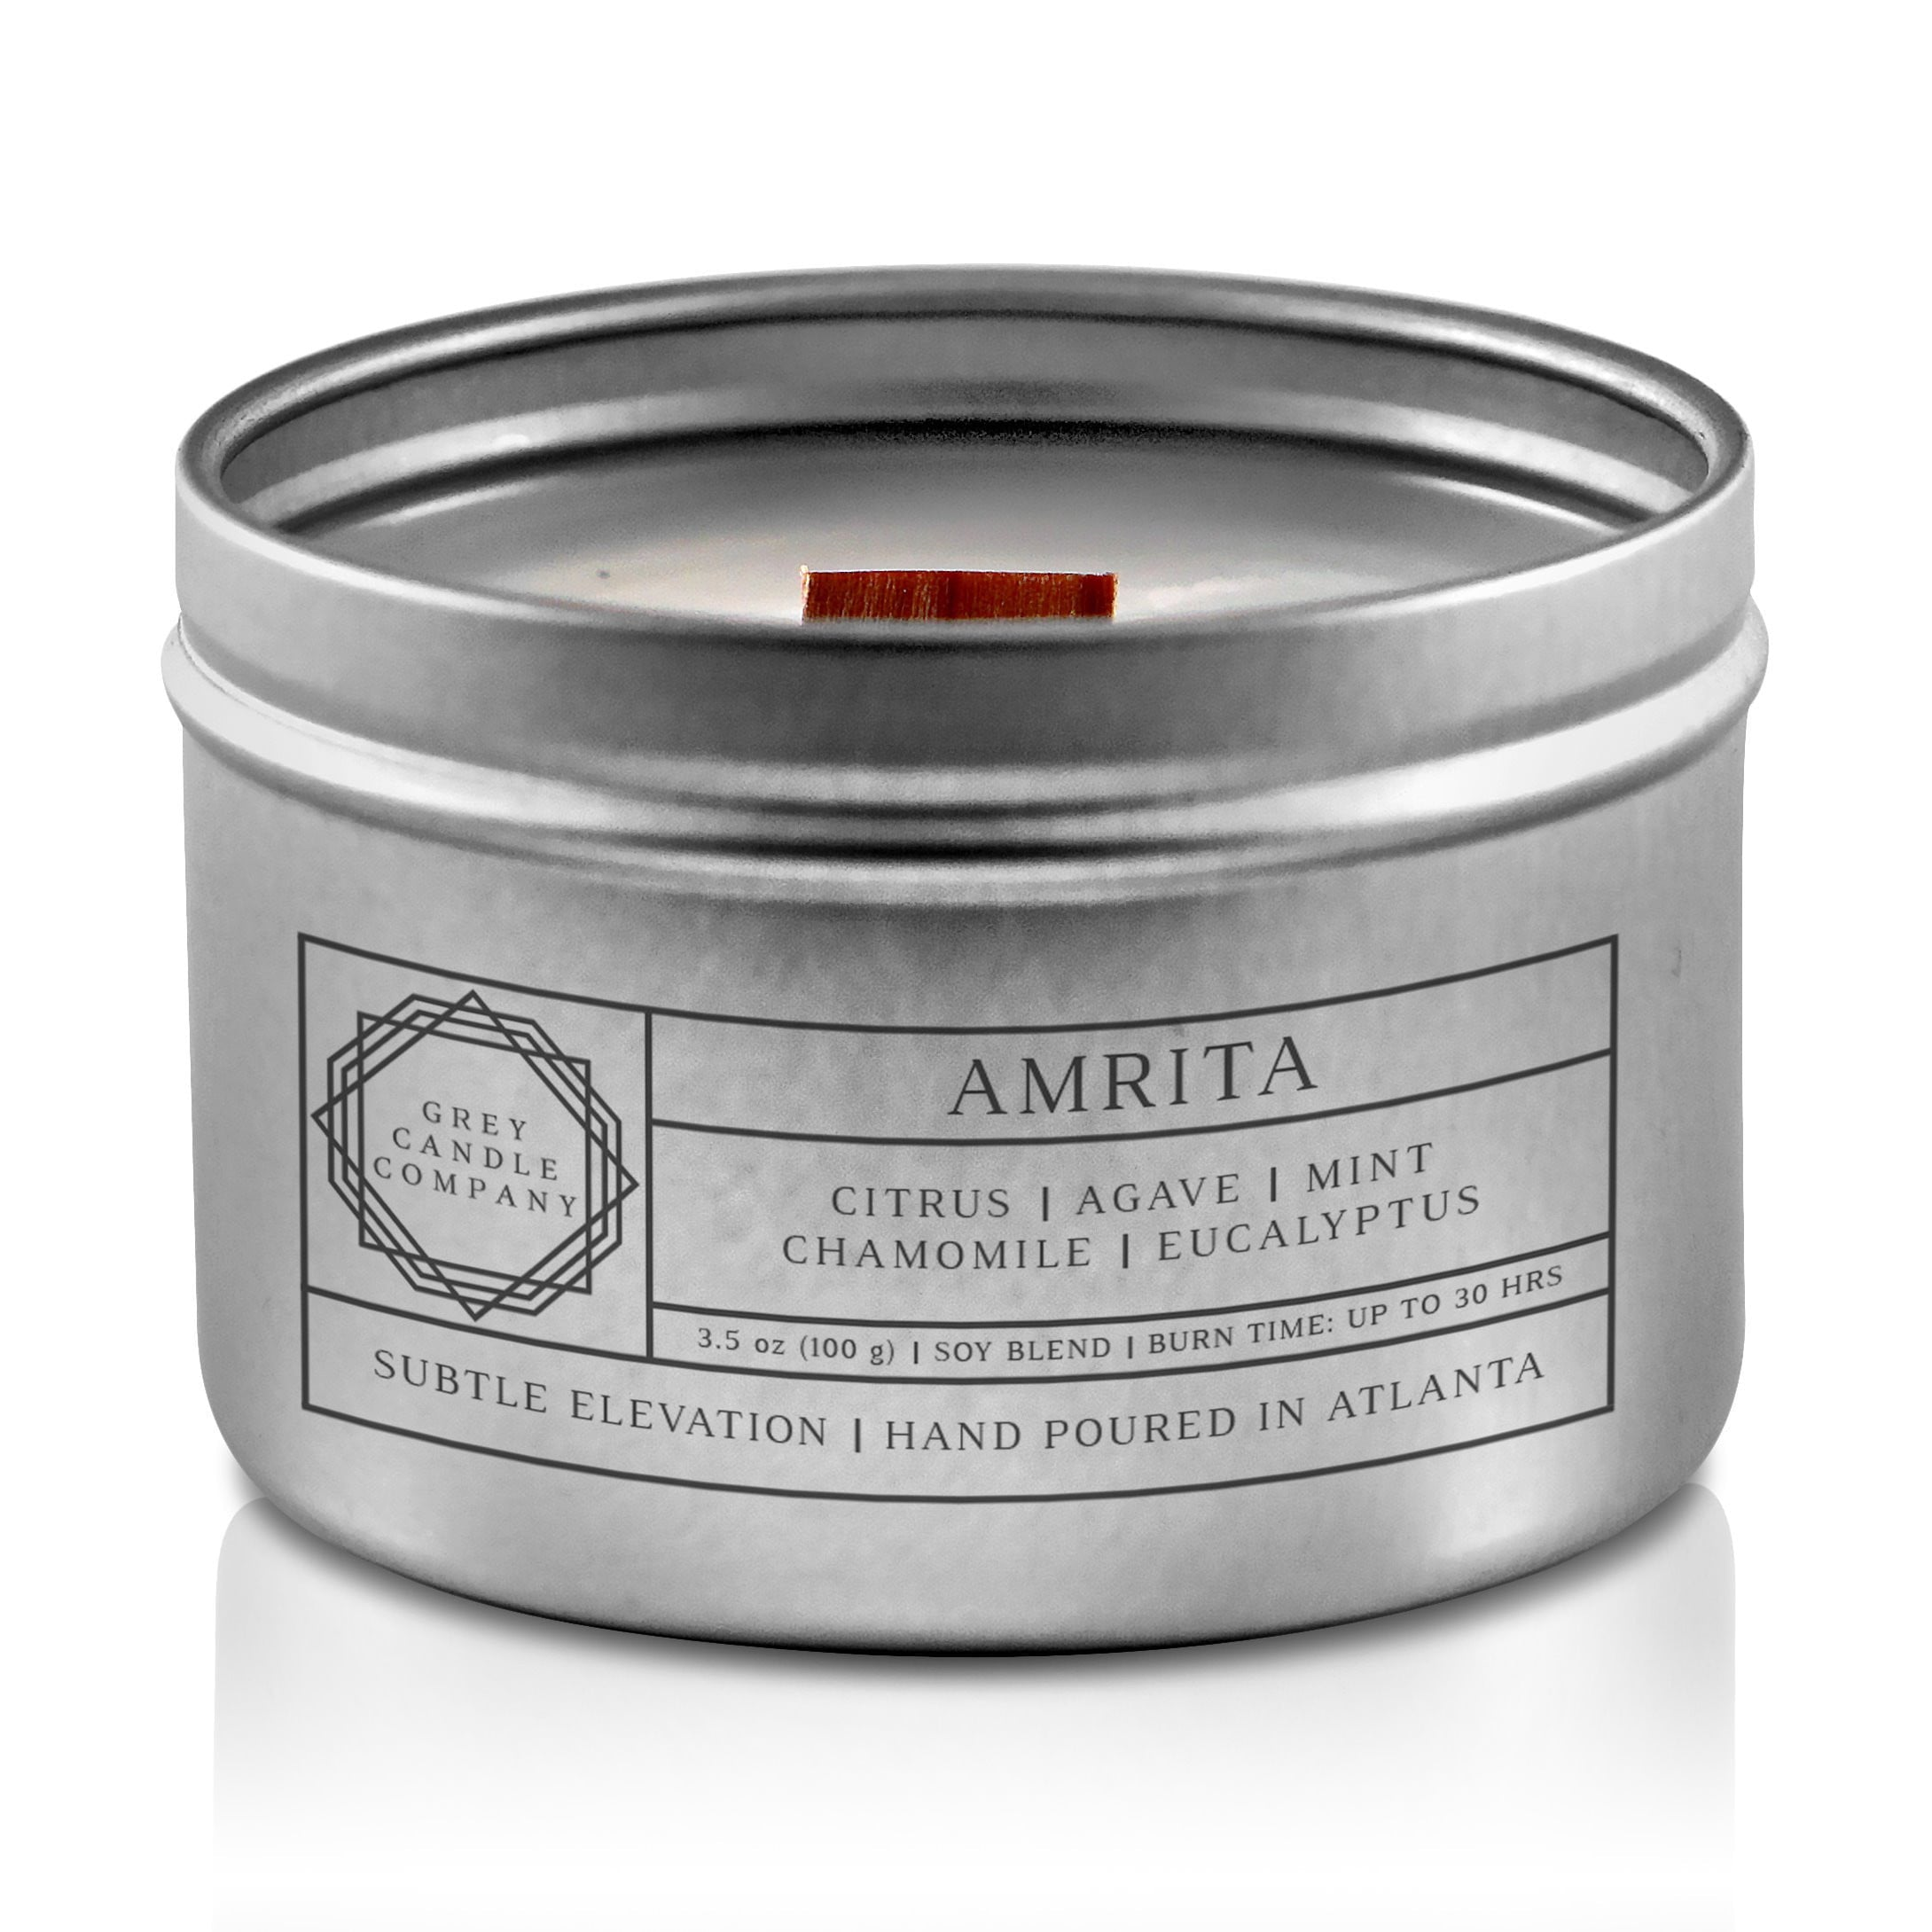 AMRITA CANDLES Grey Candle Company 3.5 oz. TIN